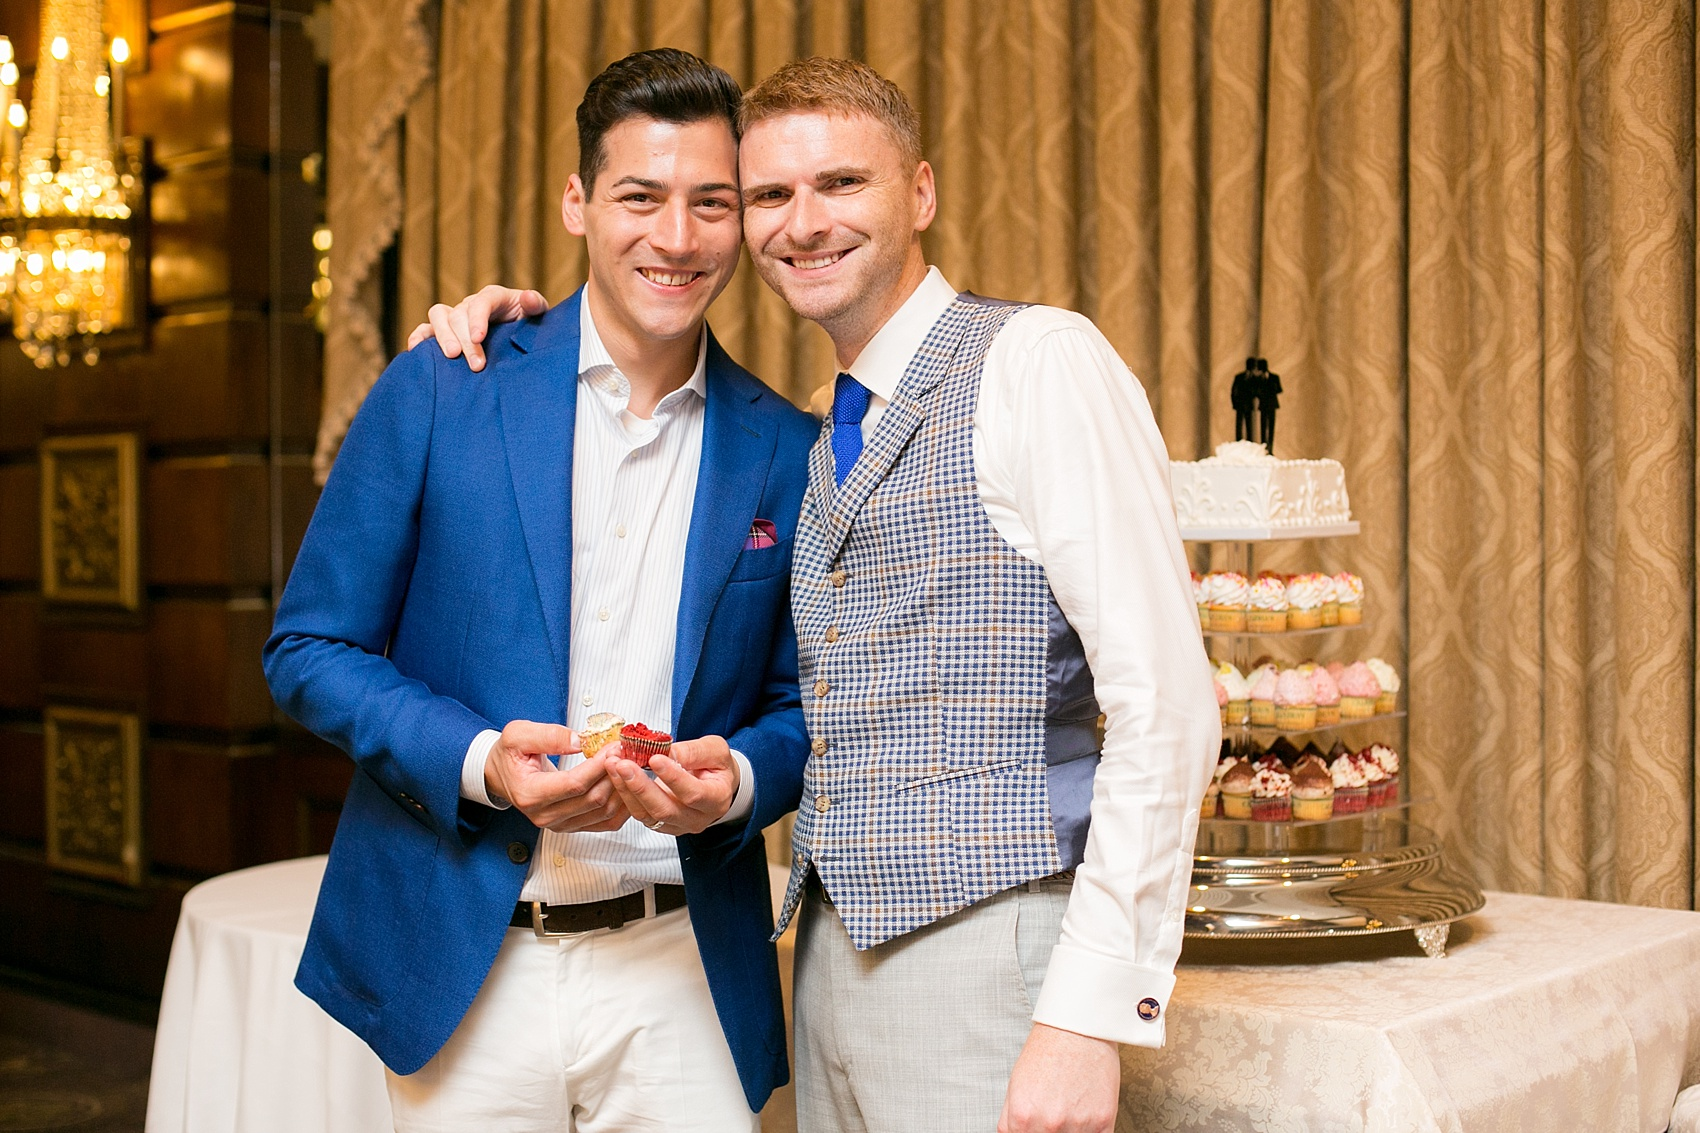 Mikkel Paige Photography photos of a gay wedding at The Manor in West Orange, NJ. The grooms chose a cupcake tower for a cake cutting.